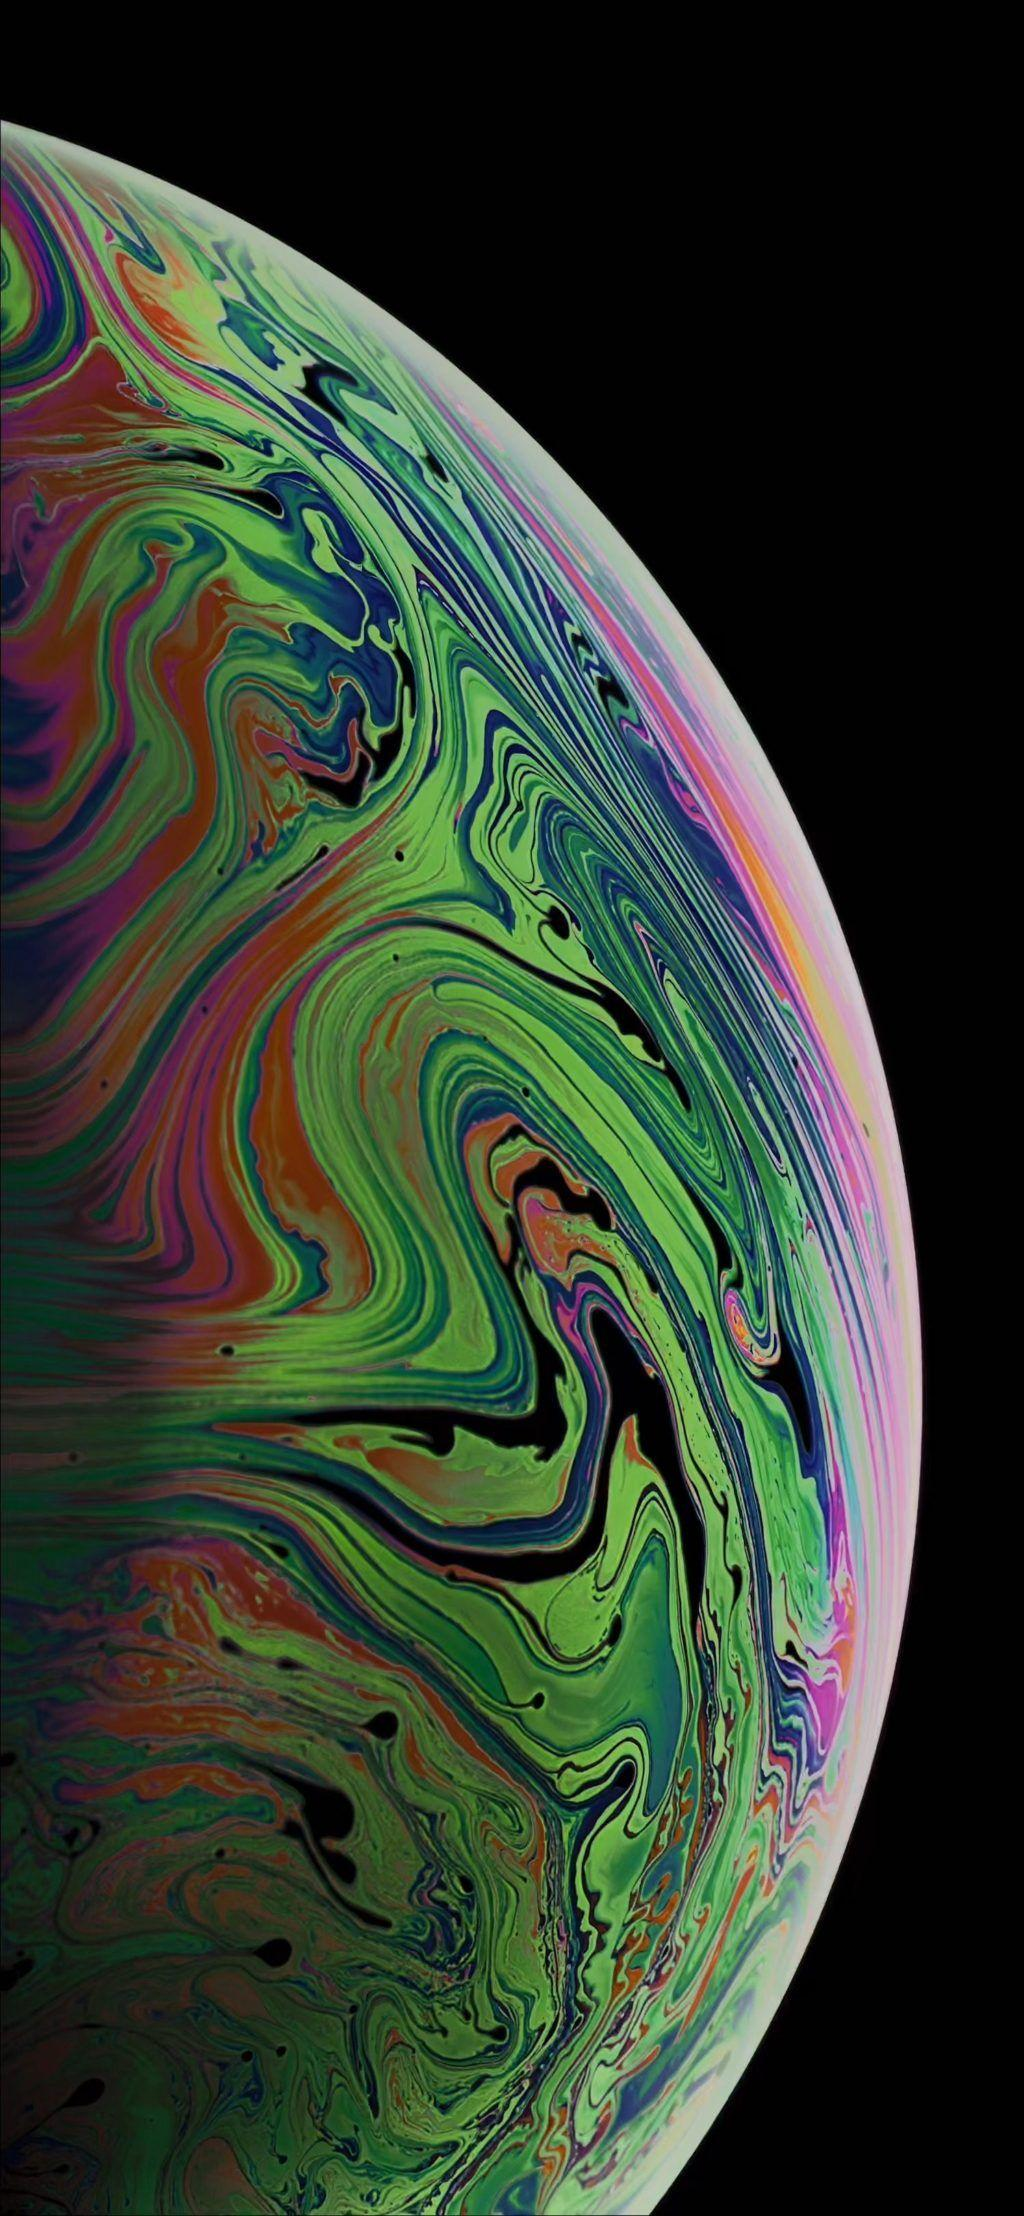 Iphone Xs Max Wallpapers Wallpaper Cave